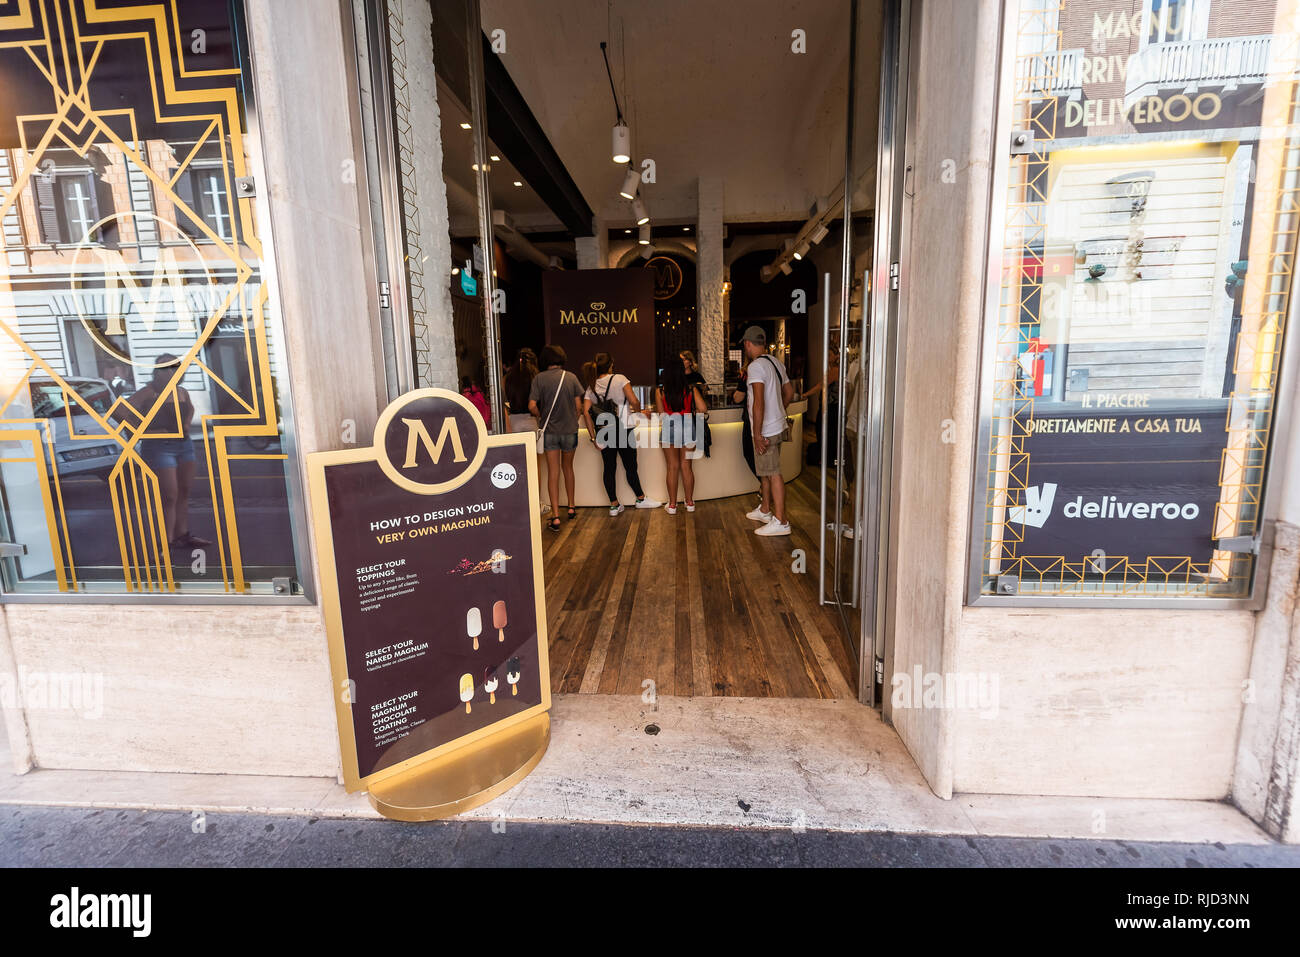 Rome, Italy - September 5, 2018: Italian street outside in city day storefront for Magnum M ice cream gelato store - Stock Image